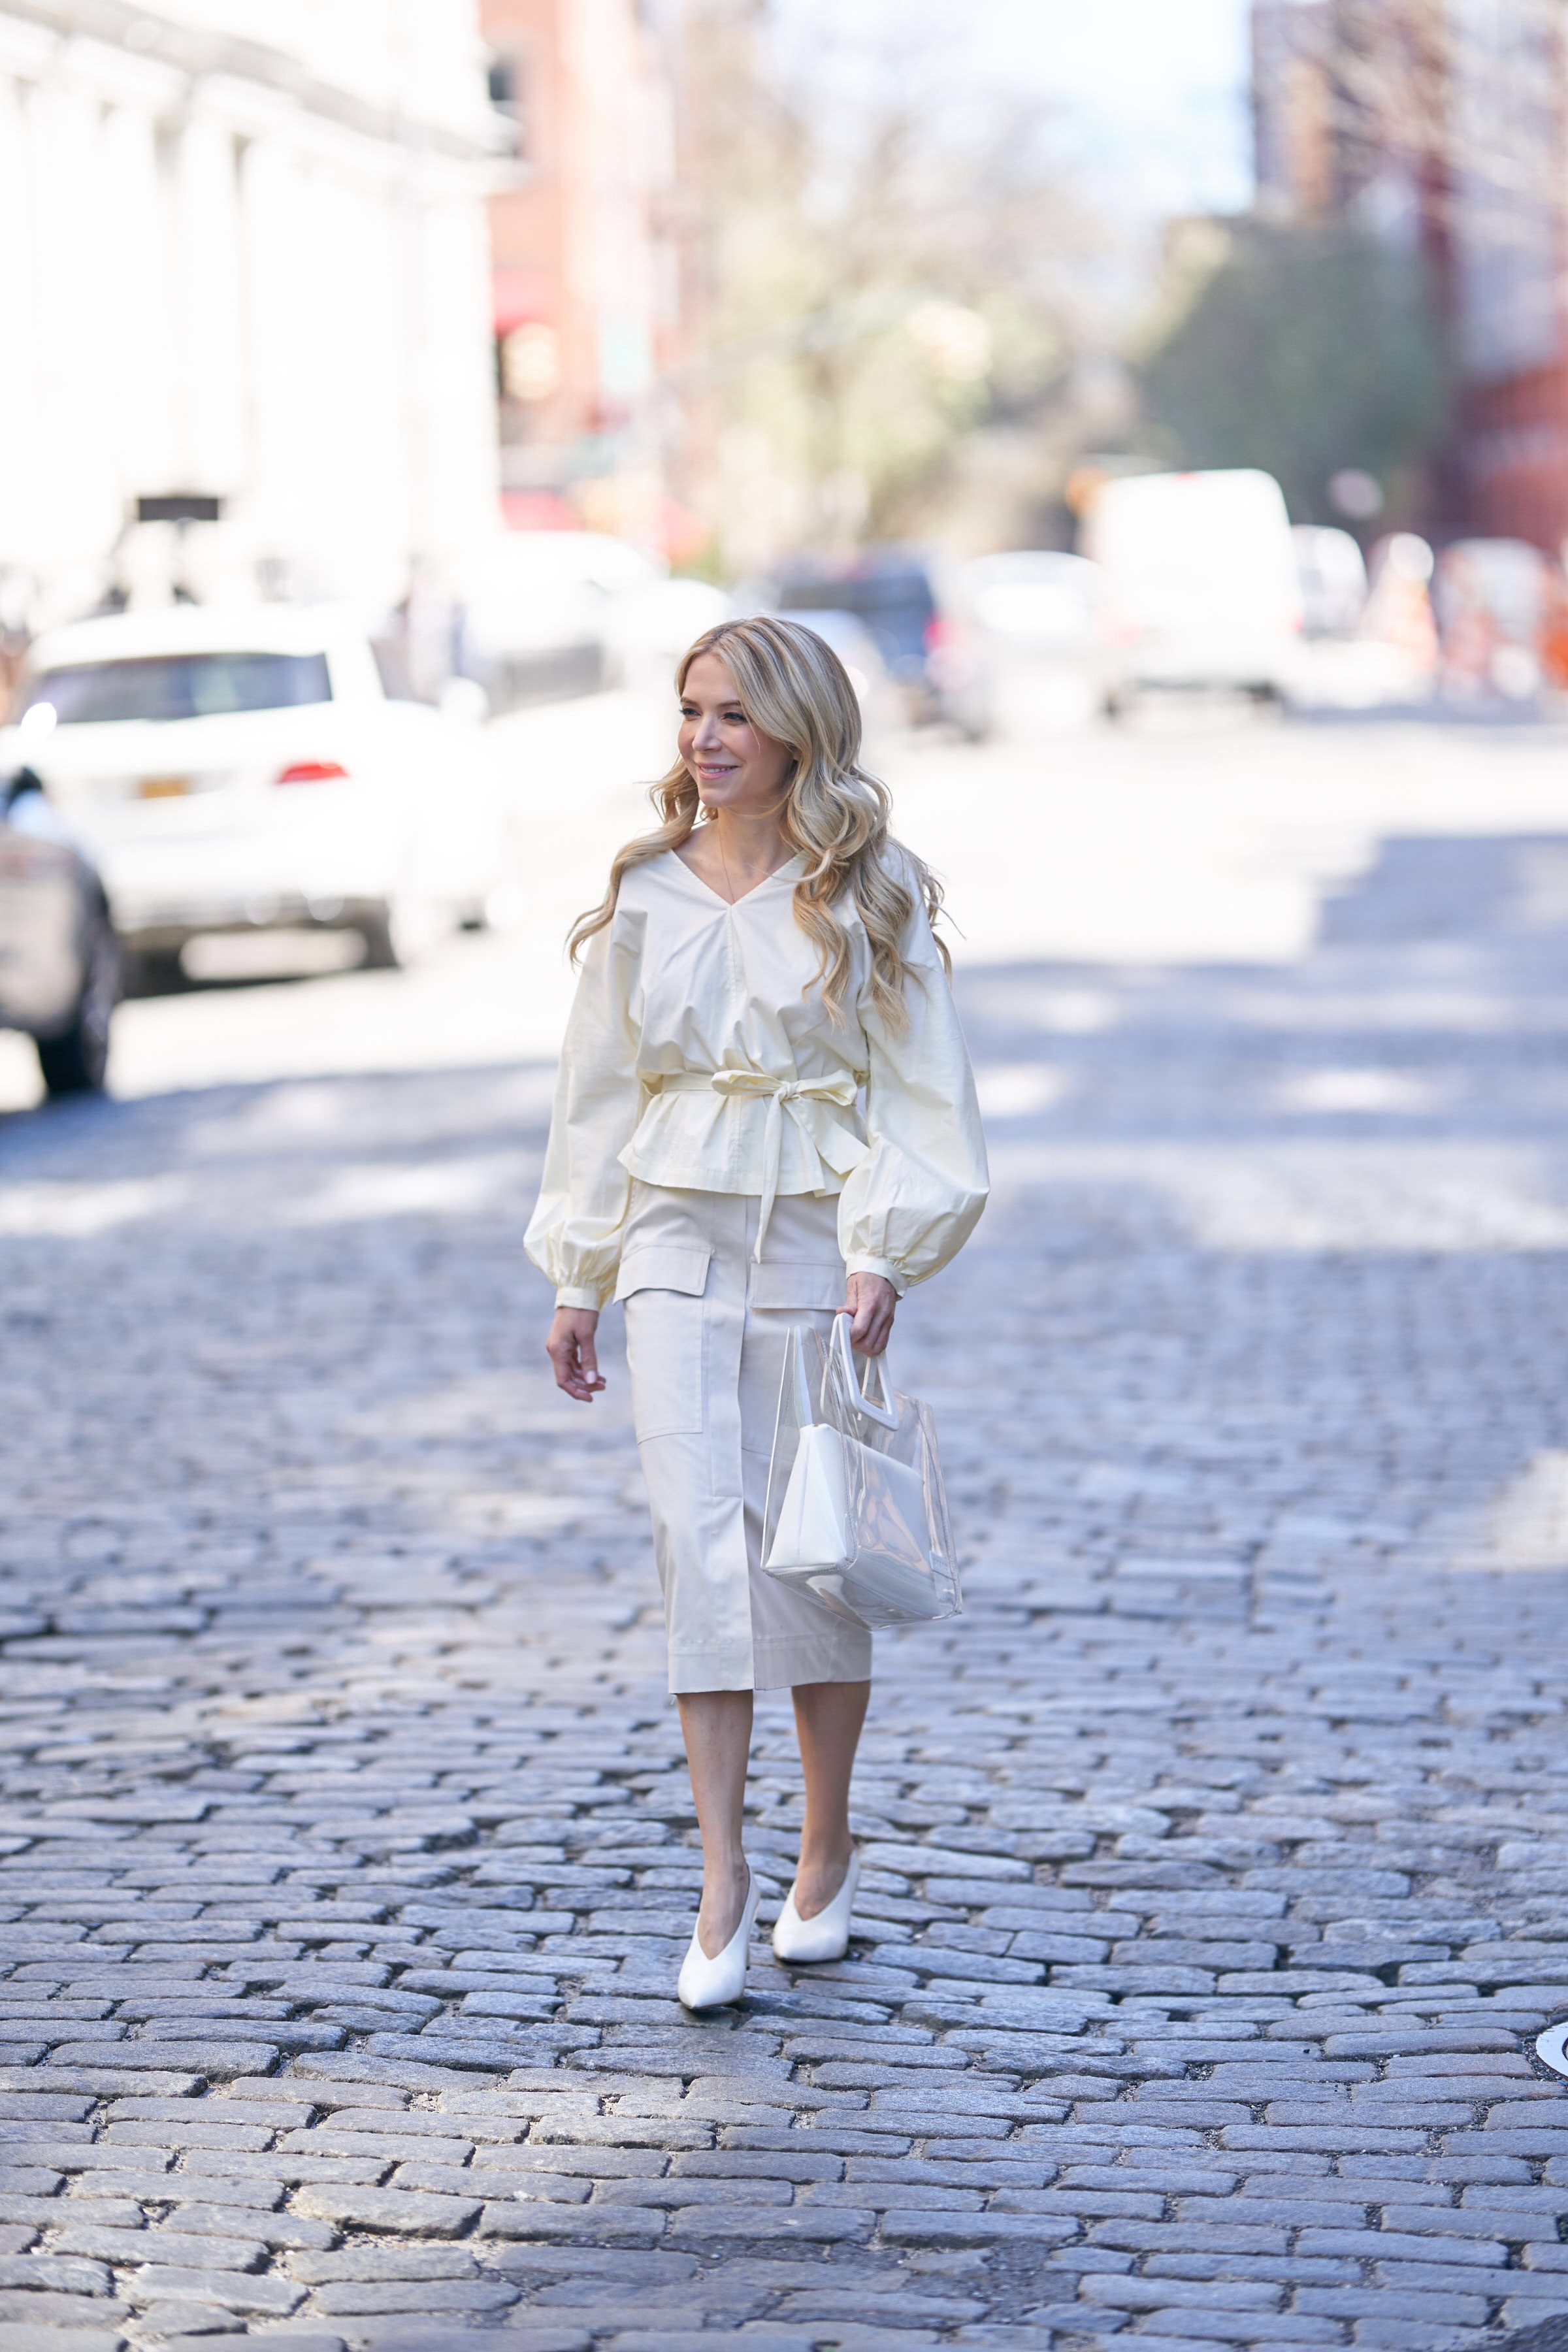 Laura Bonner, About the Outfits, www.abouttheoutfits.com, NYC fashion blogger